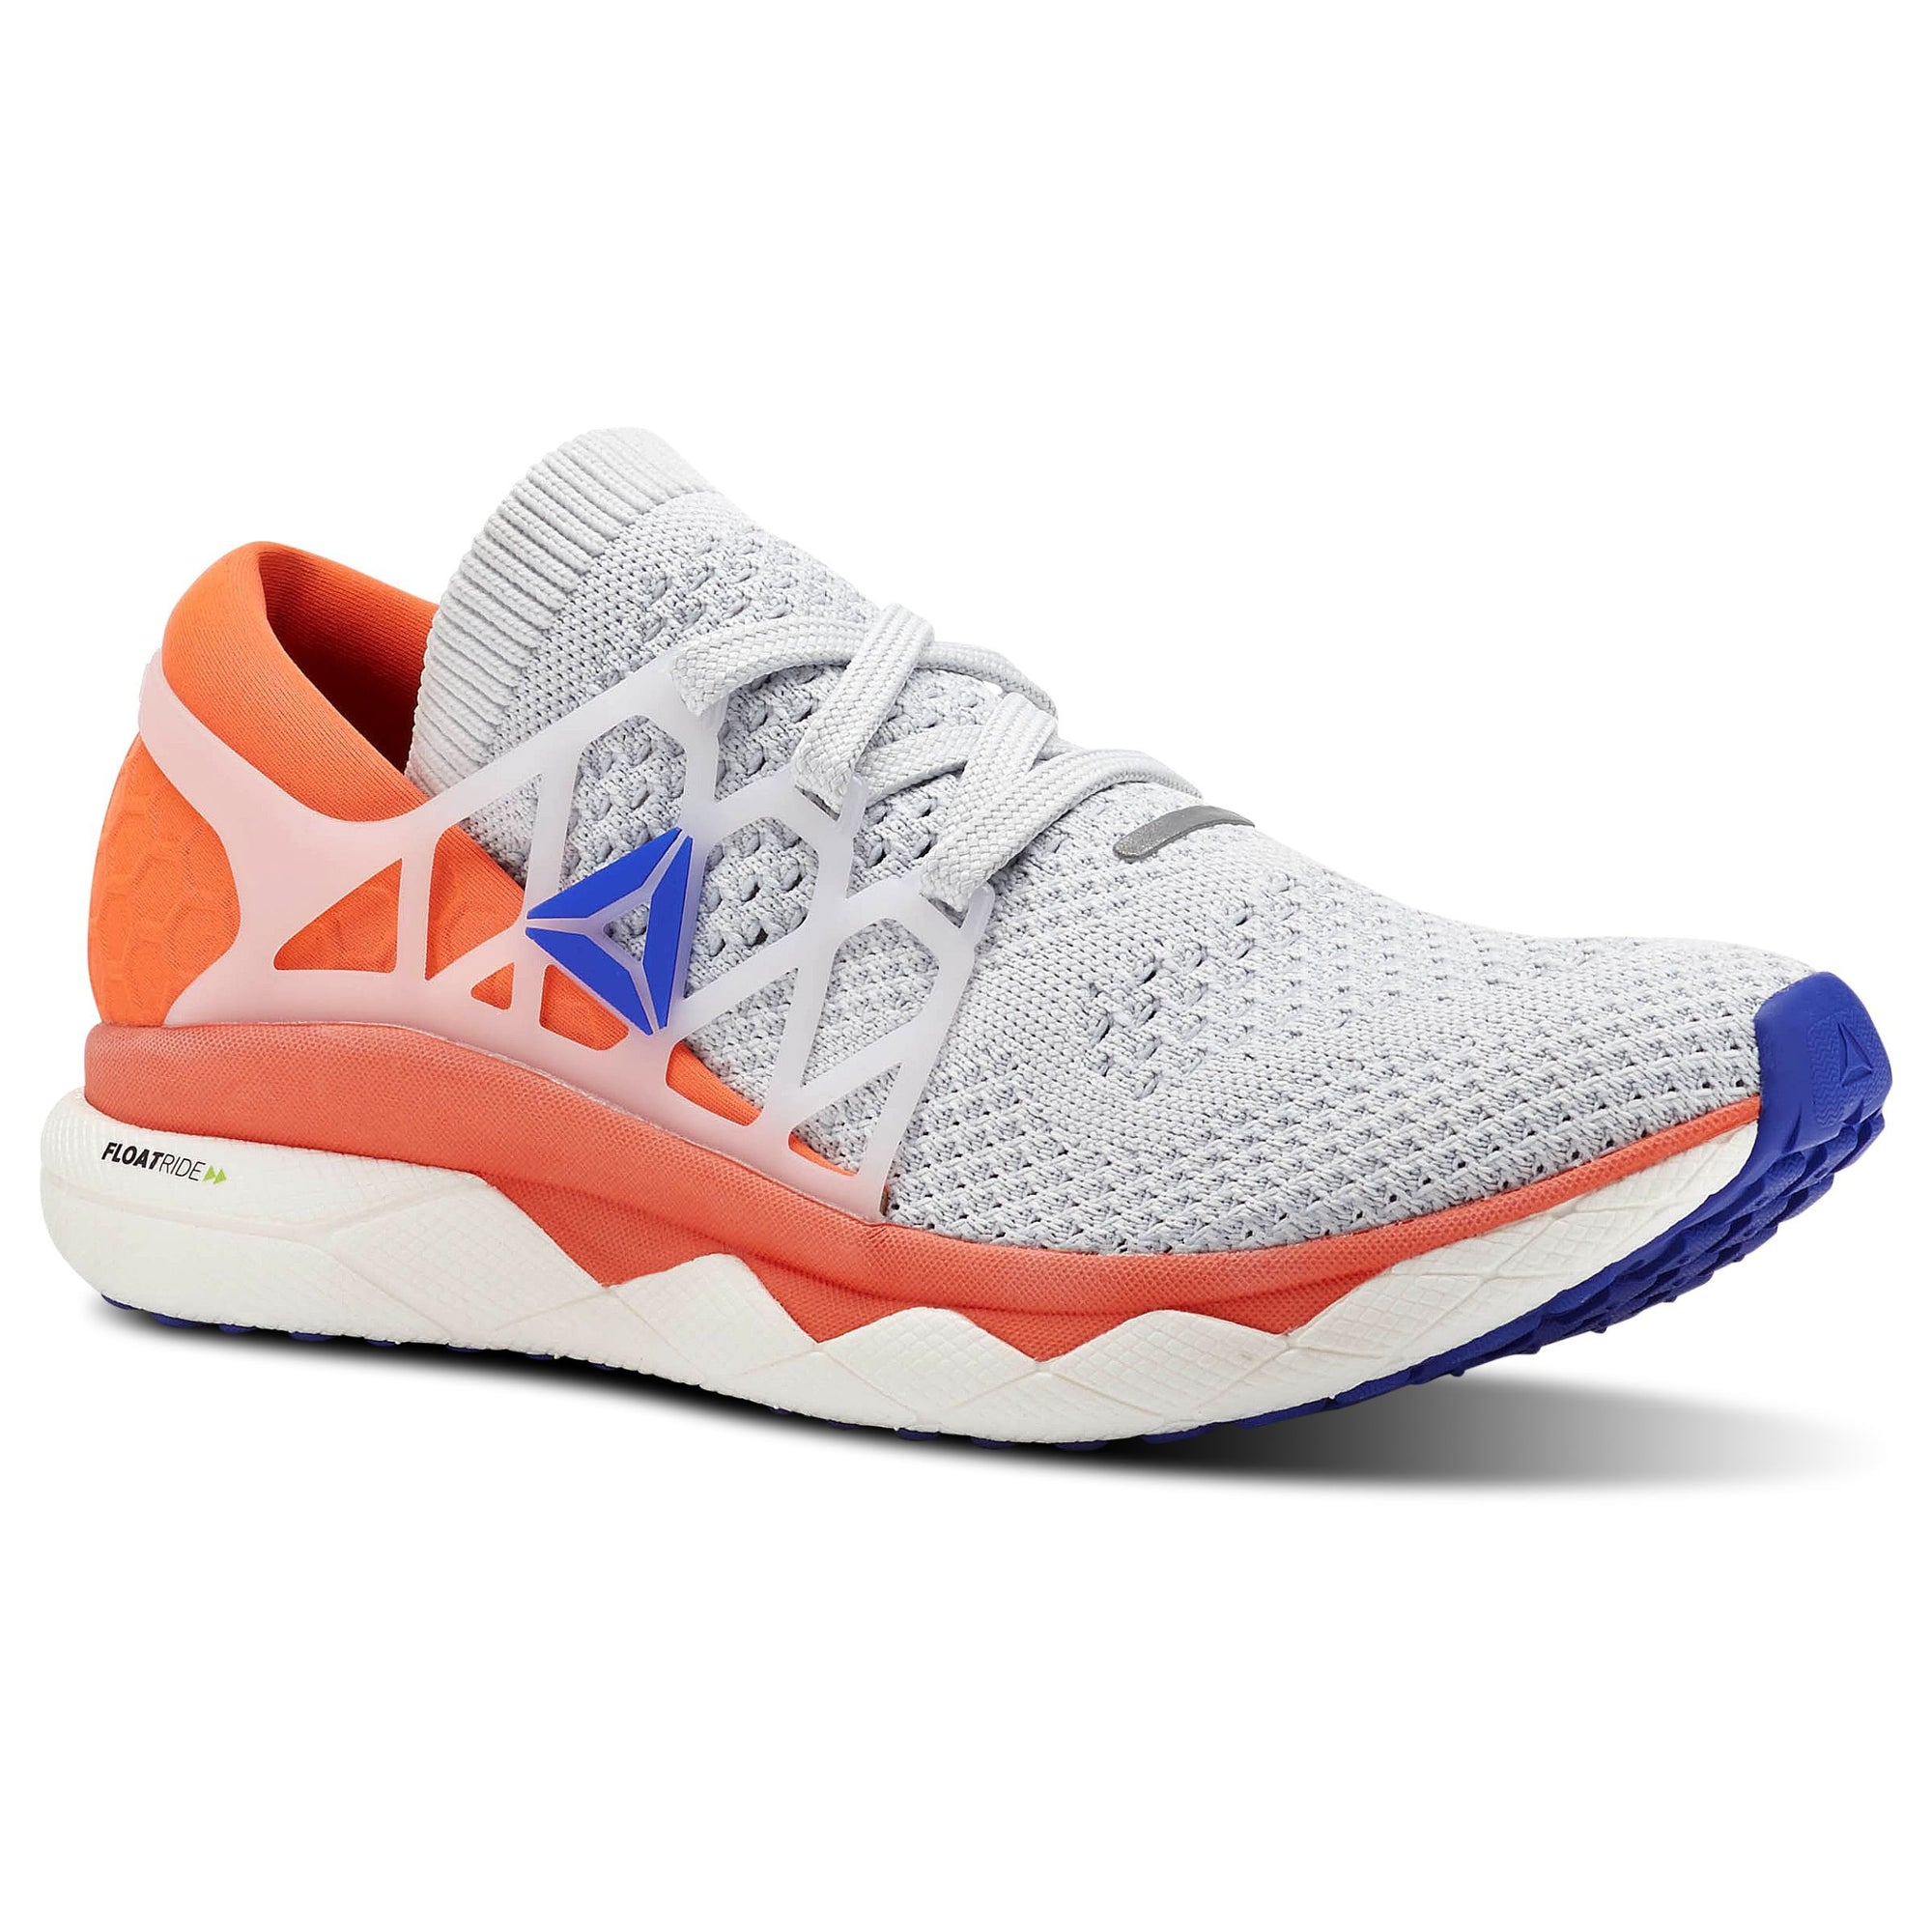 Singapore Reebok Neutral Running Shoes Men Floatride Run Ultraknit Running  Shoe 23be7925e